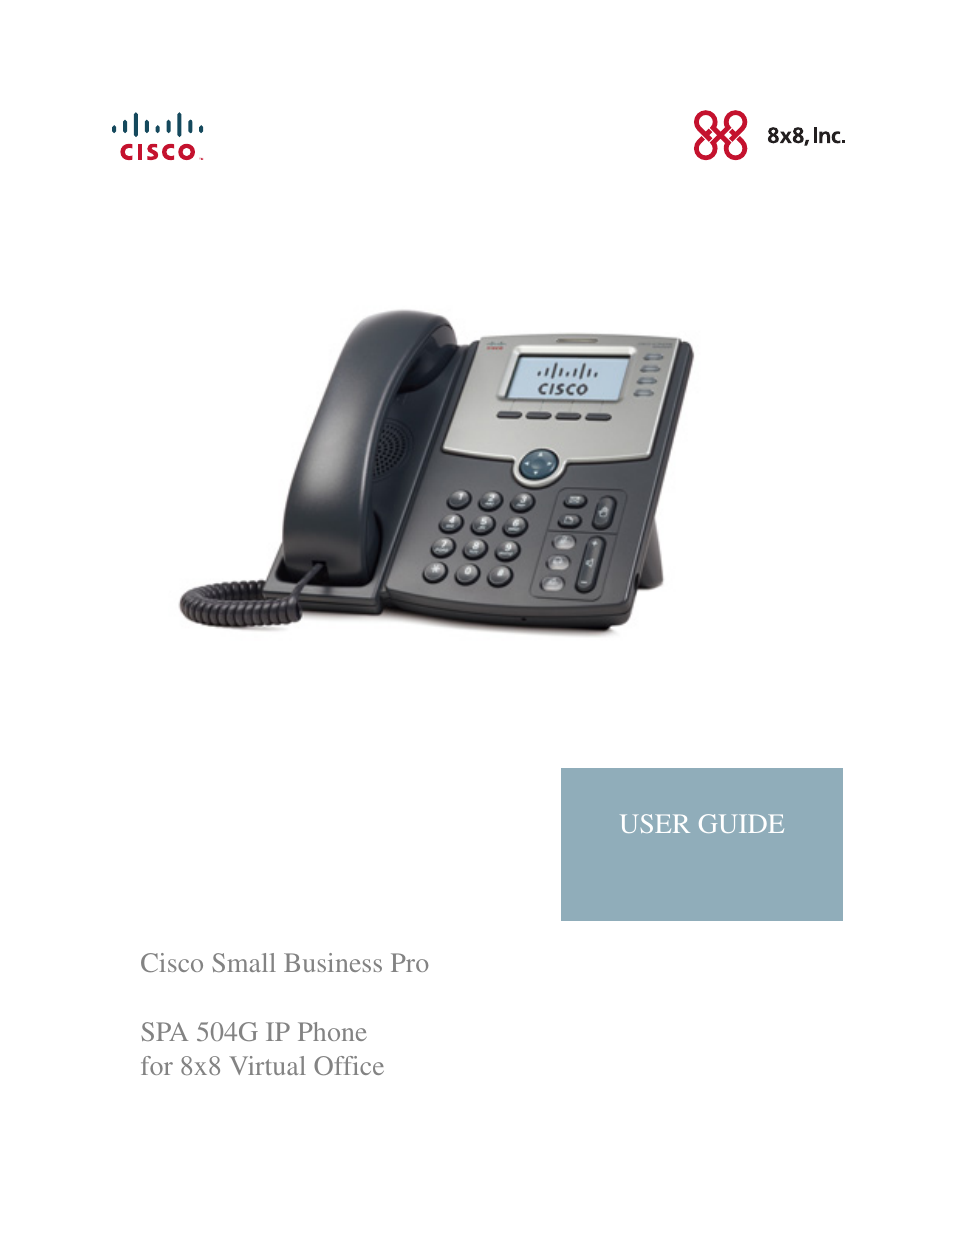 Spa 504g ip phone for 8x8 virtual office user guide | telephone.